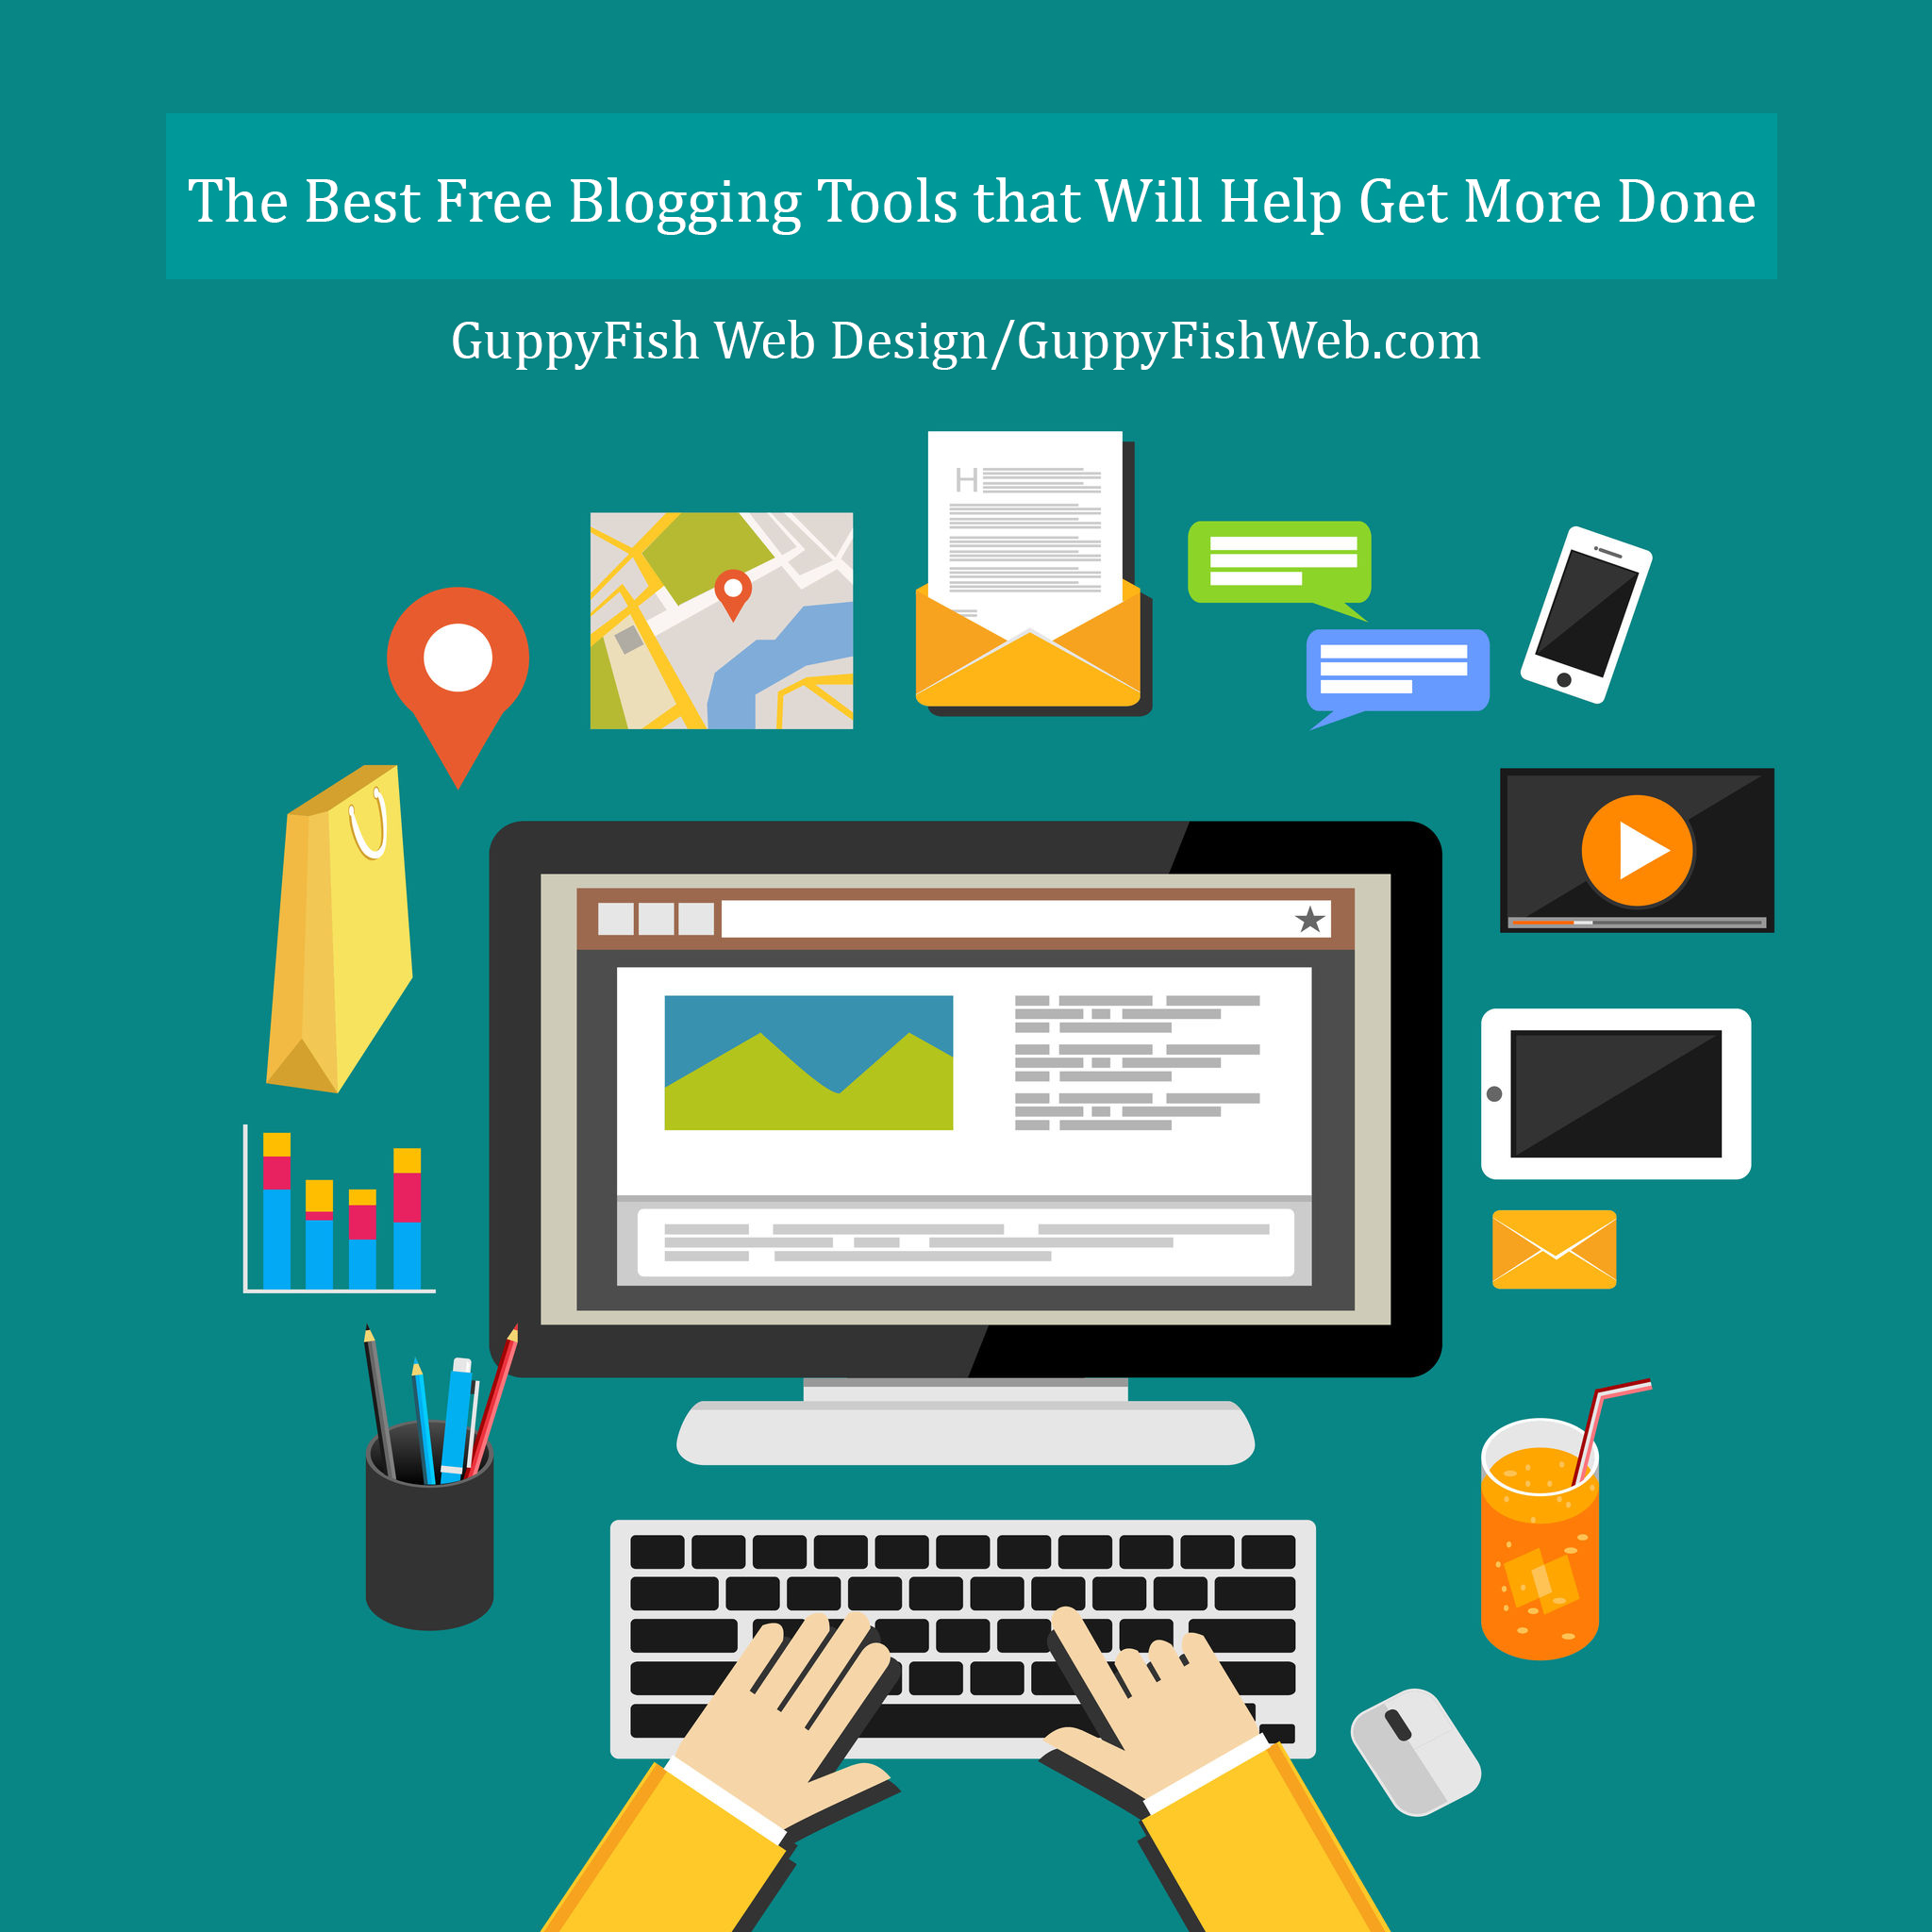 The best free blogging tools to get more done